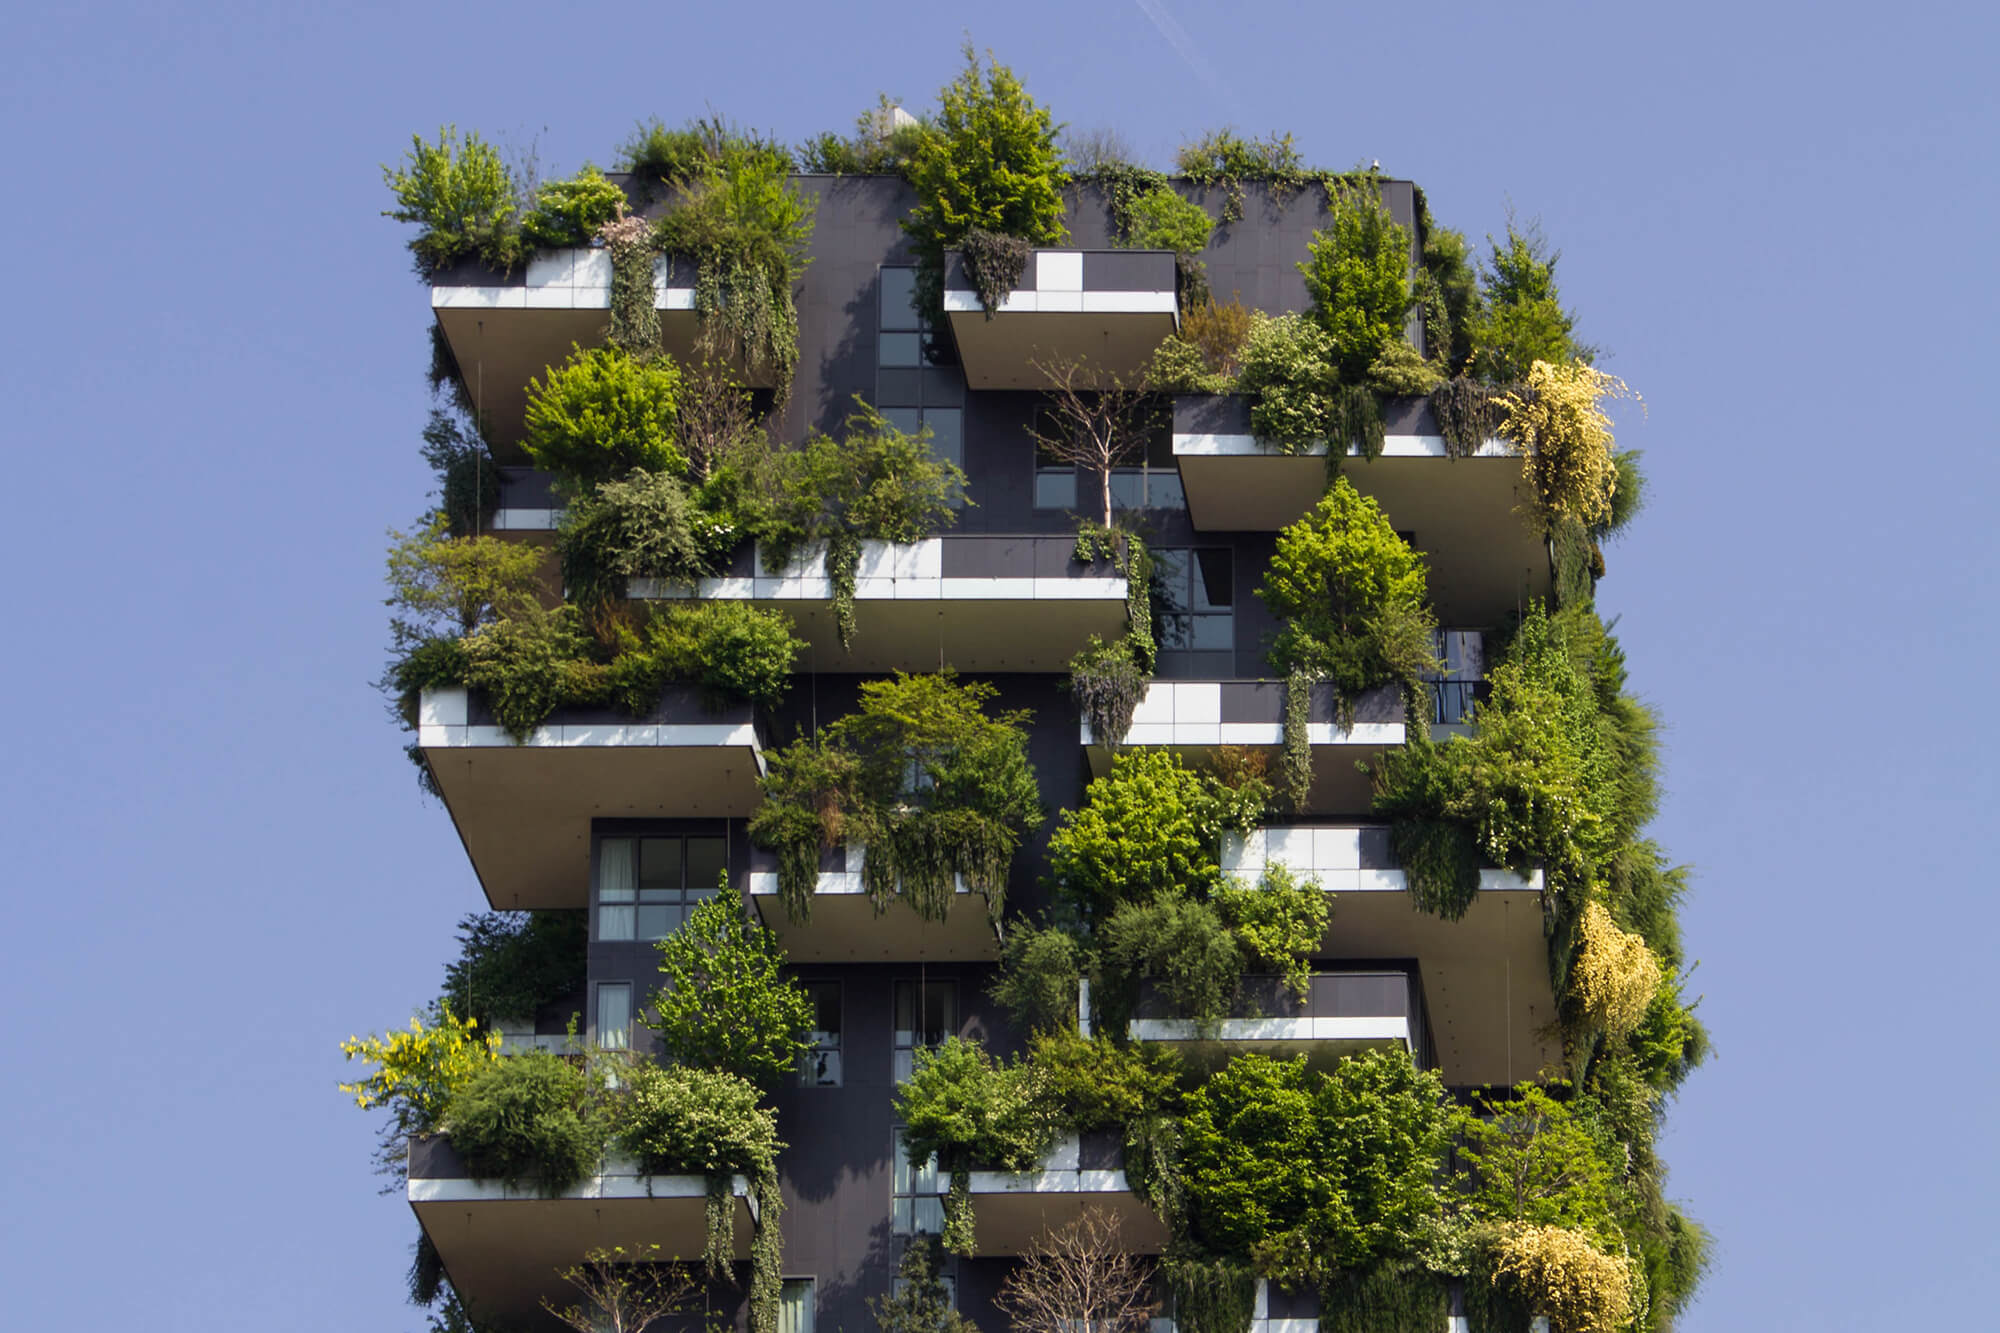 A high rise building with lots of plants growing on the outside.